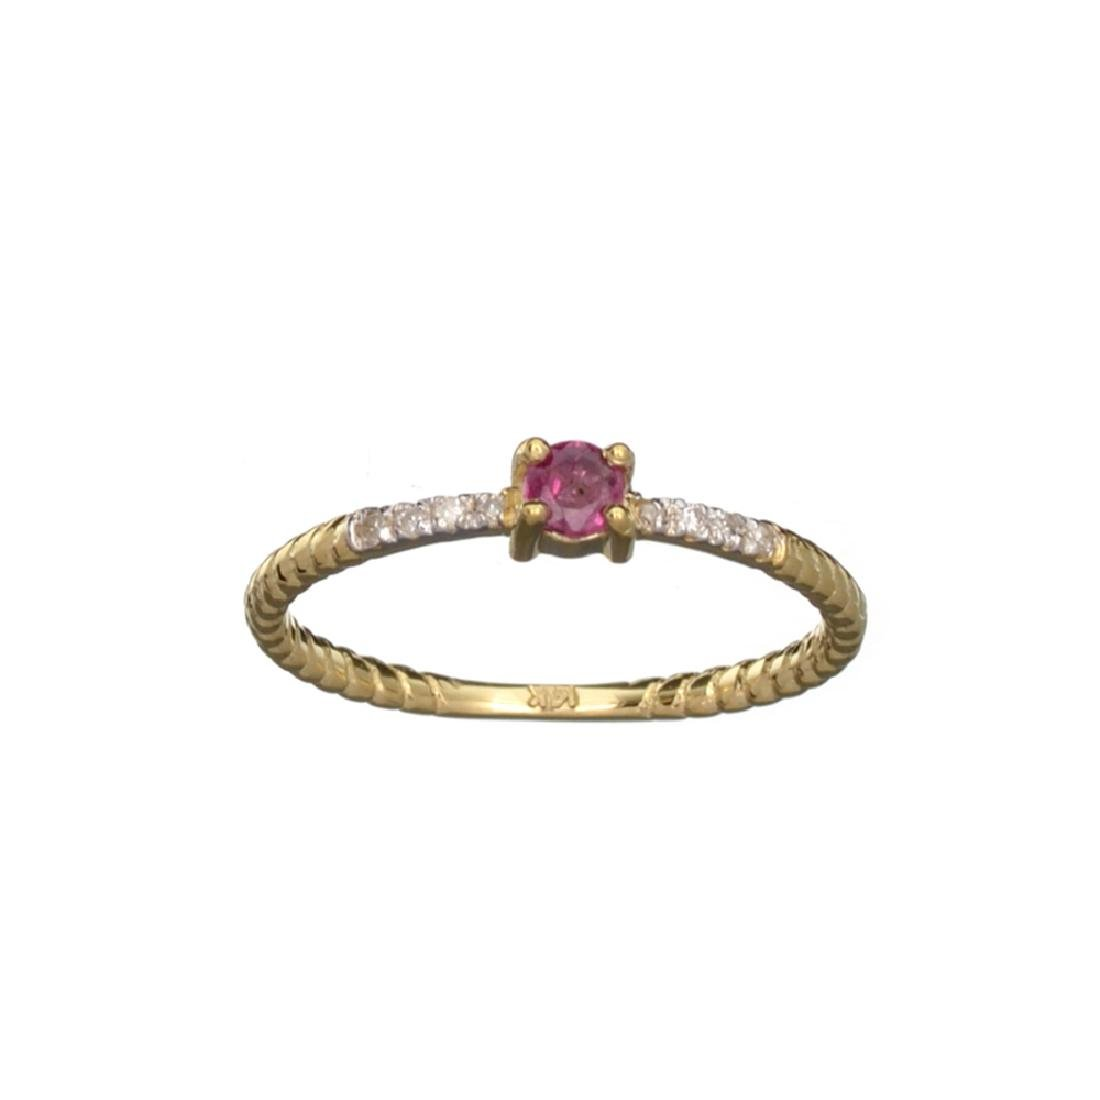 APP: 0.5k Fine Jewelry 14 KT Gold, 0.23CT Red Ruby And